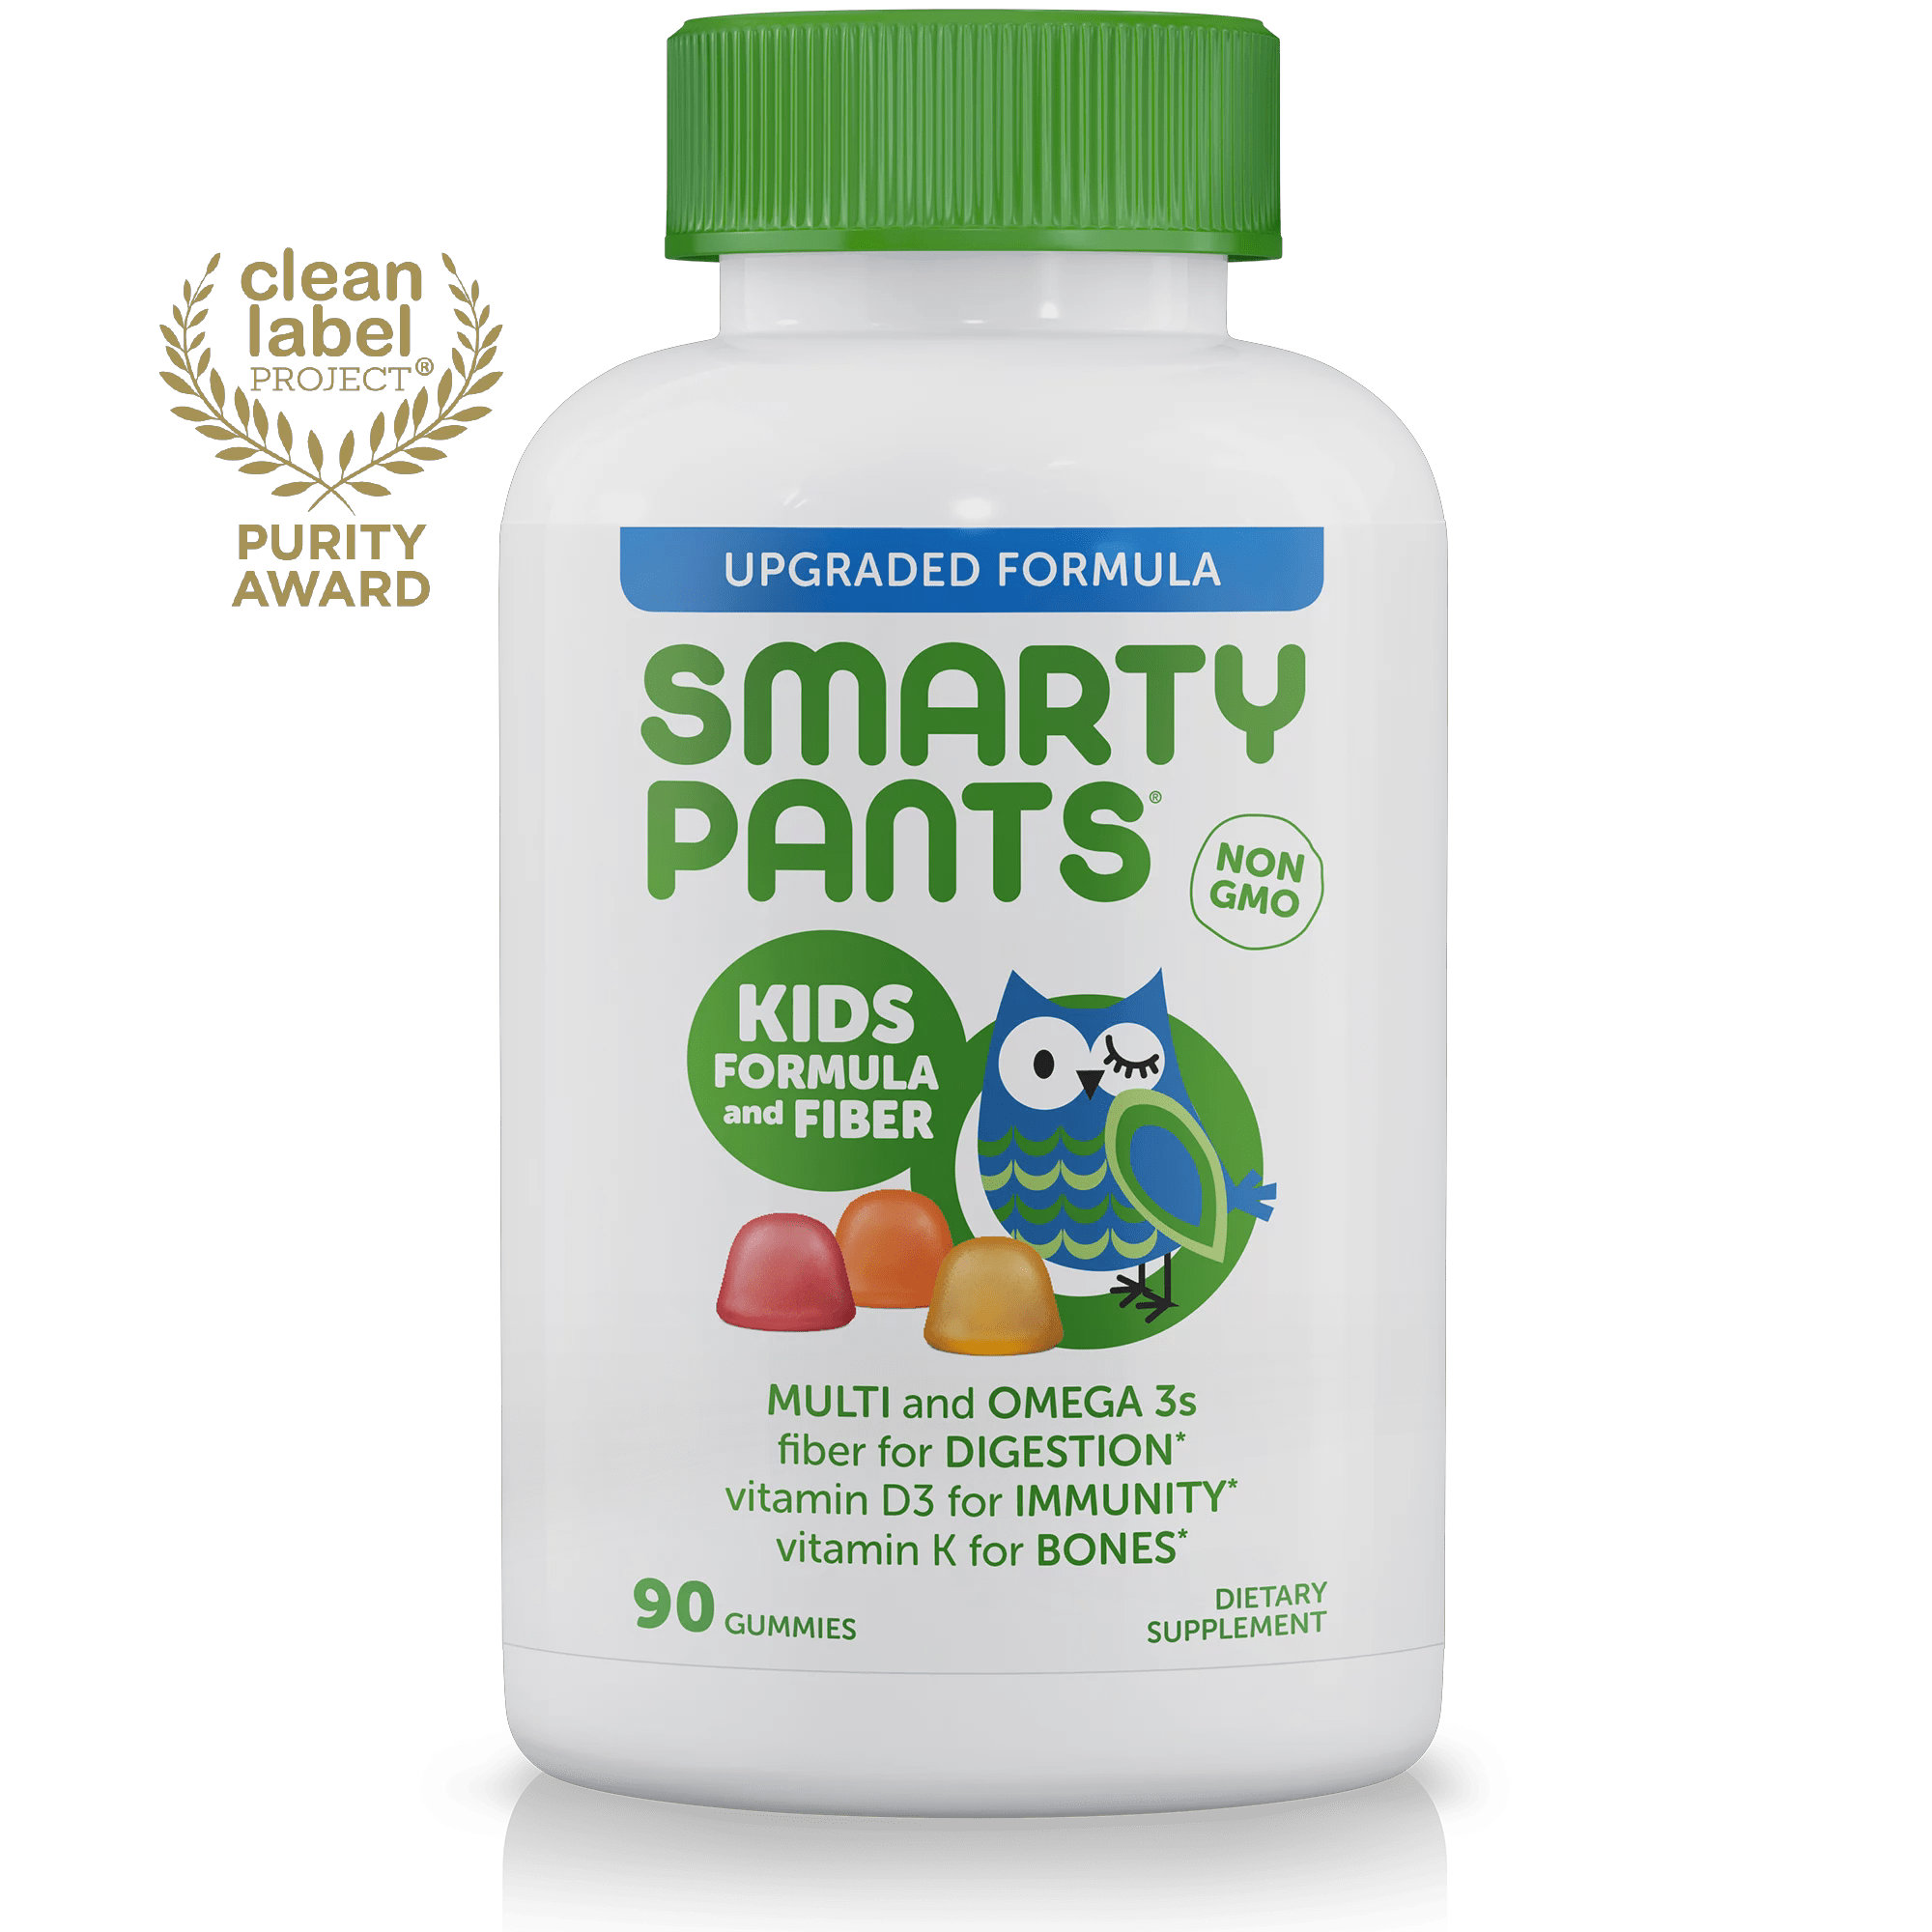 SmartyPants Kids Formula and Fiber Multivitamin Gummies, 90 Ct